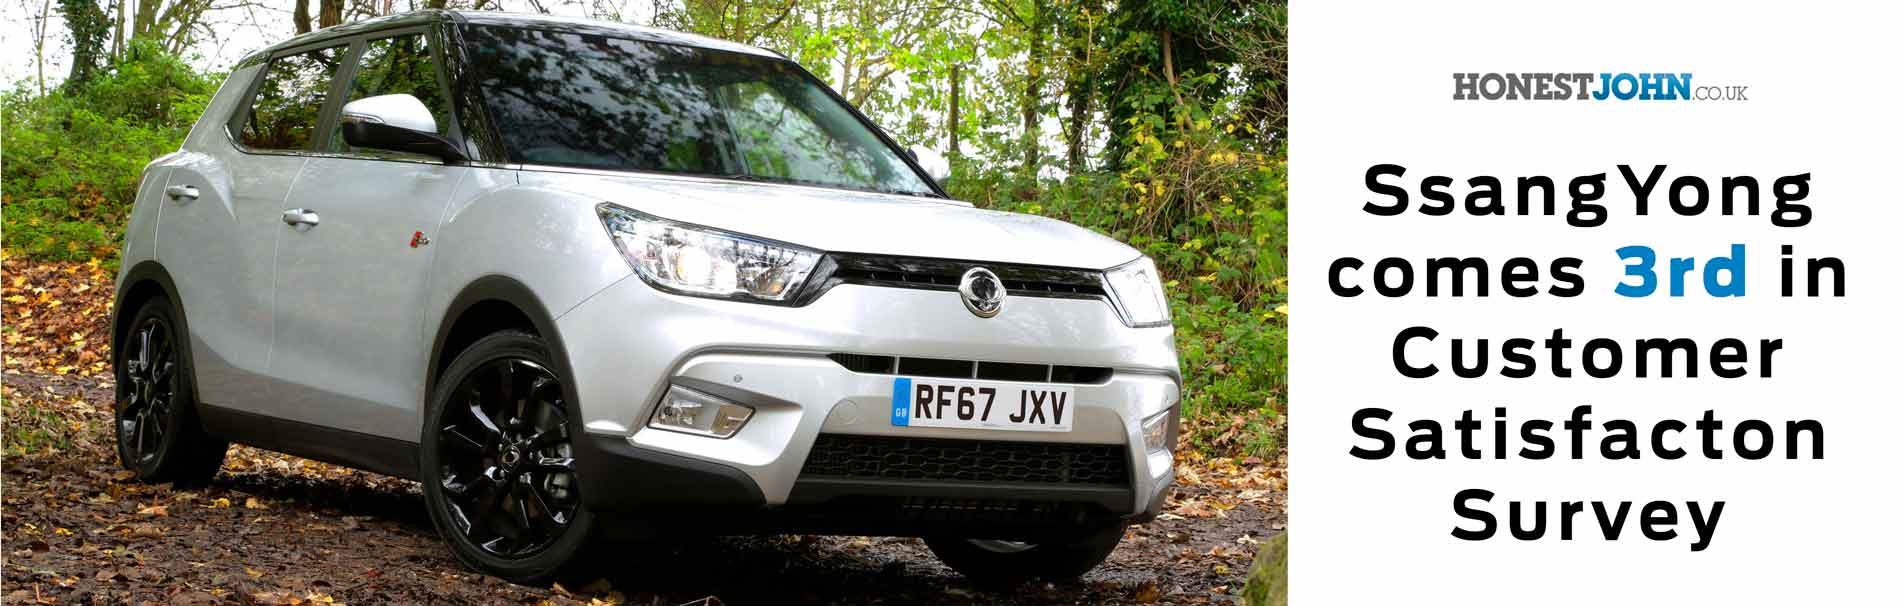 ssangyong-comes-third-in-satisfaction-survey-sli